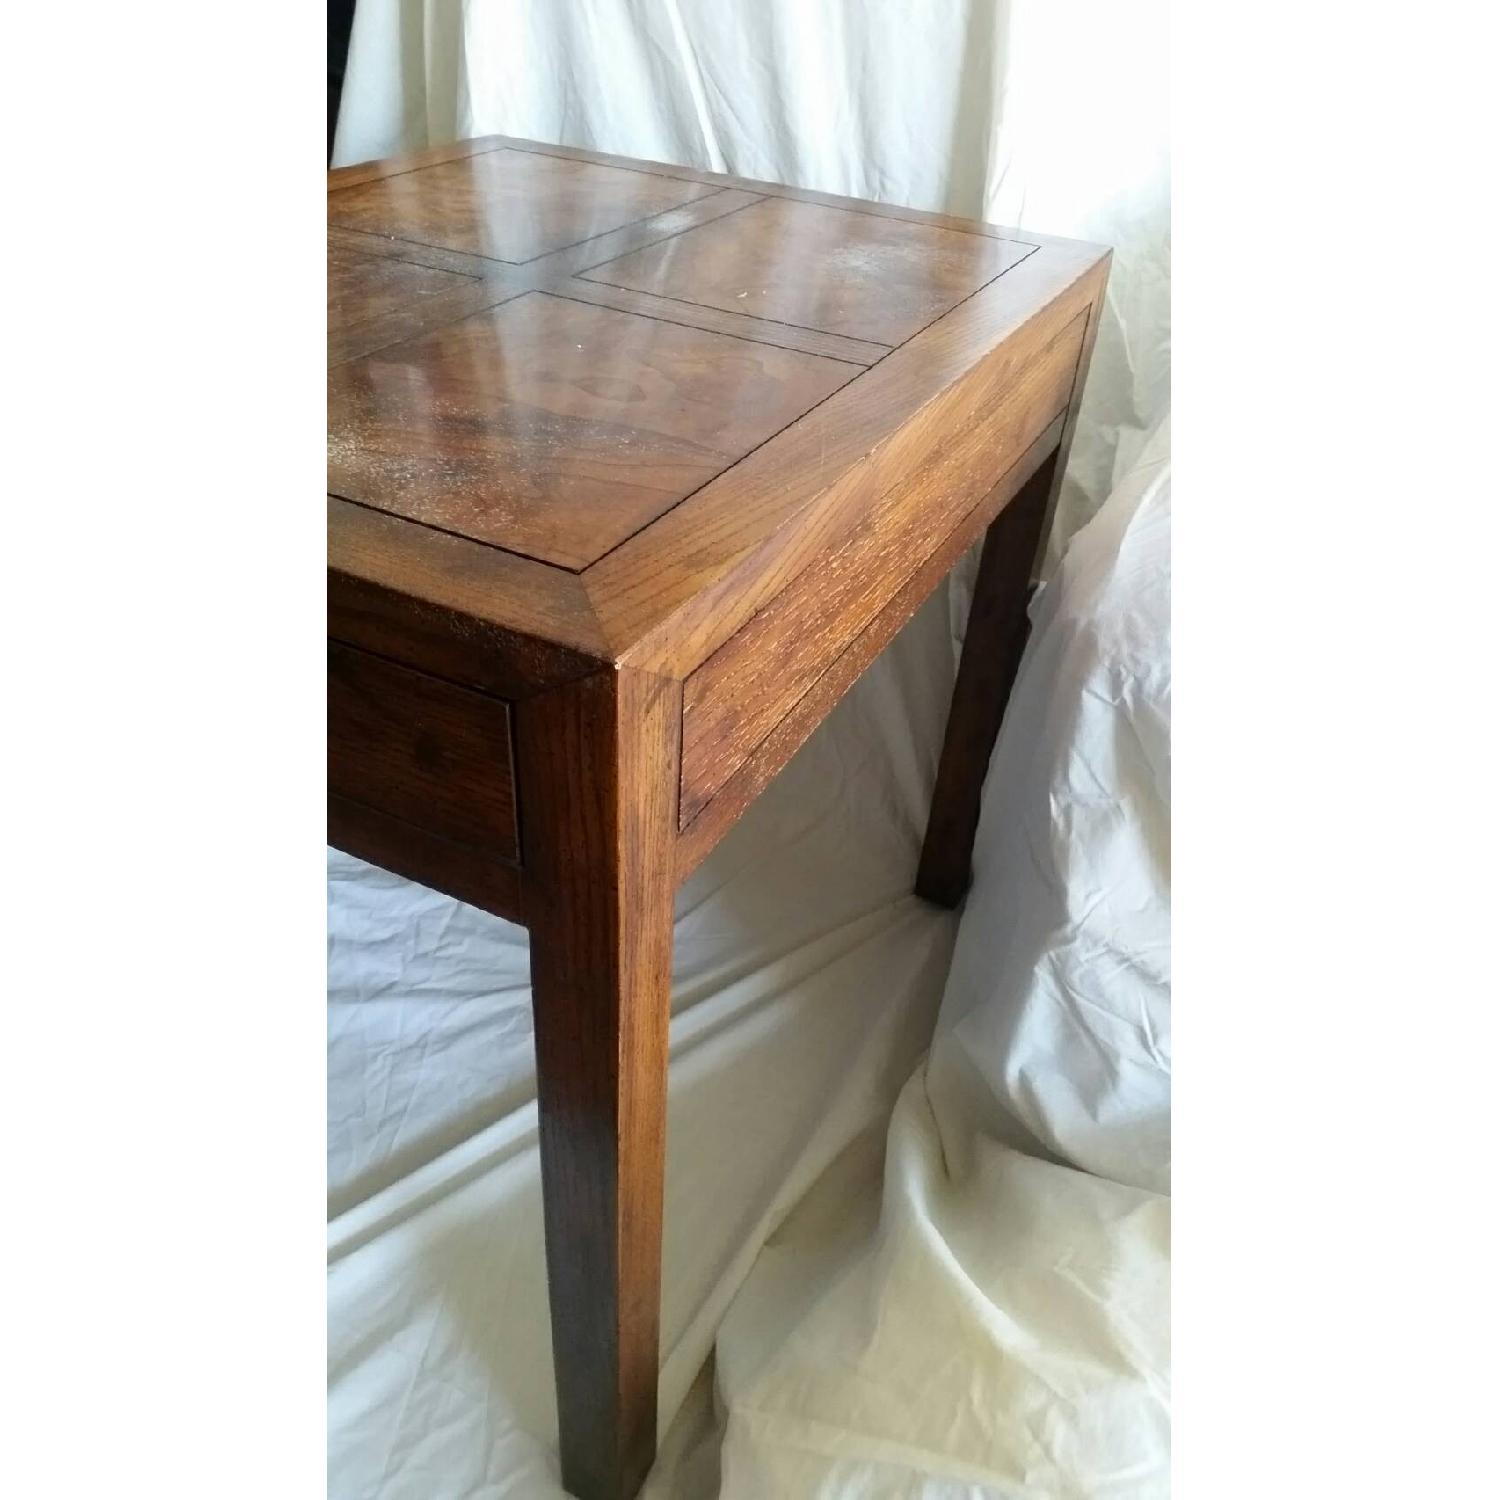 Antique Table w/ Drawer - image-6